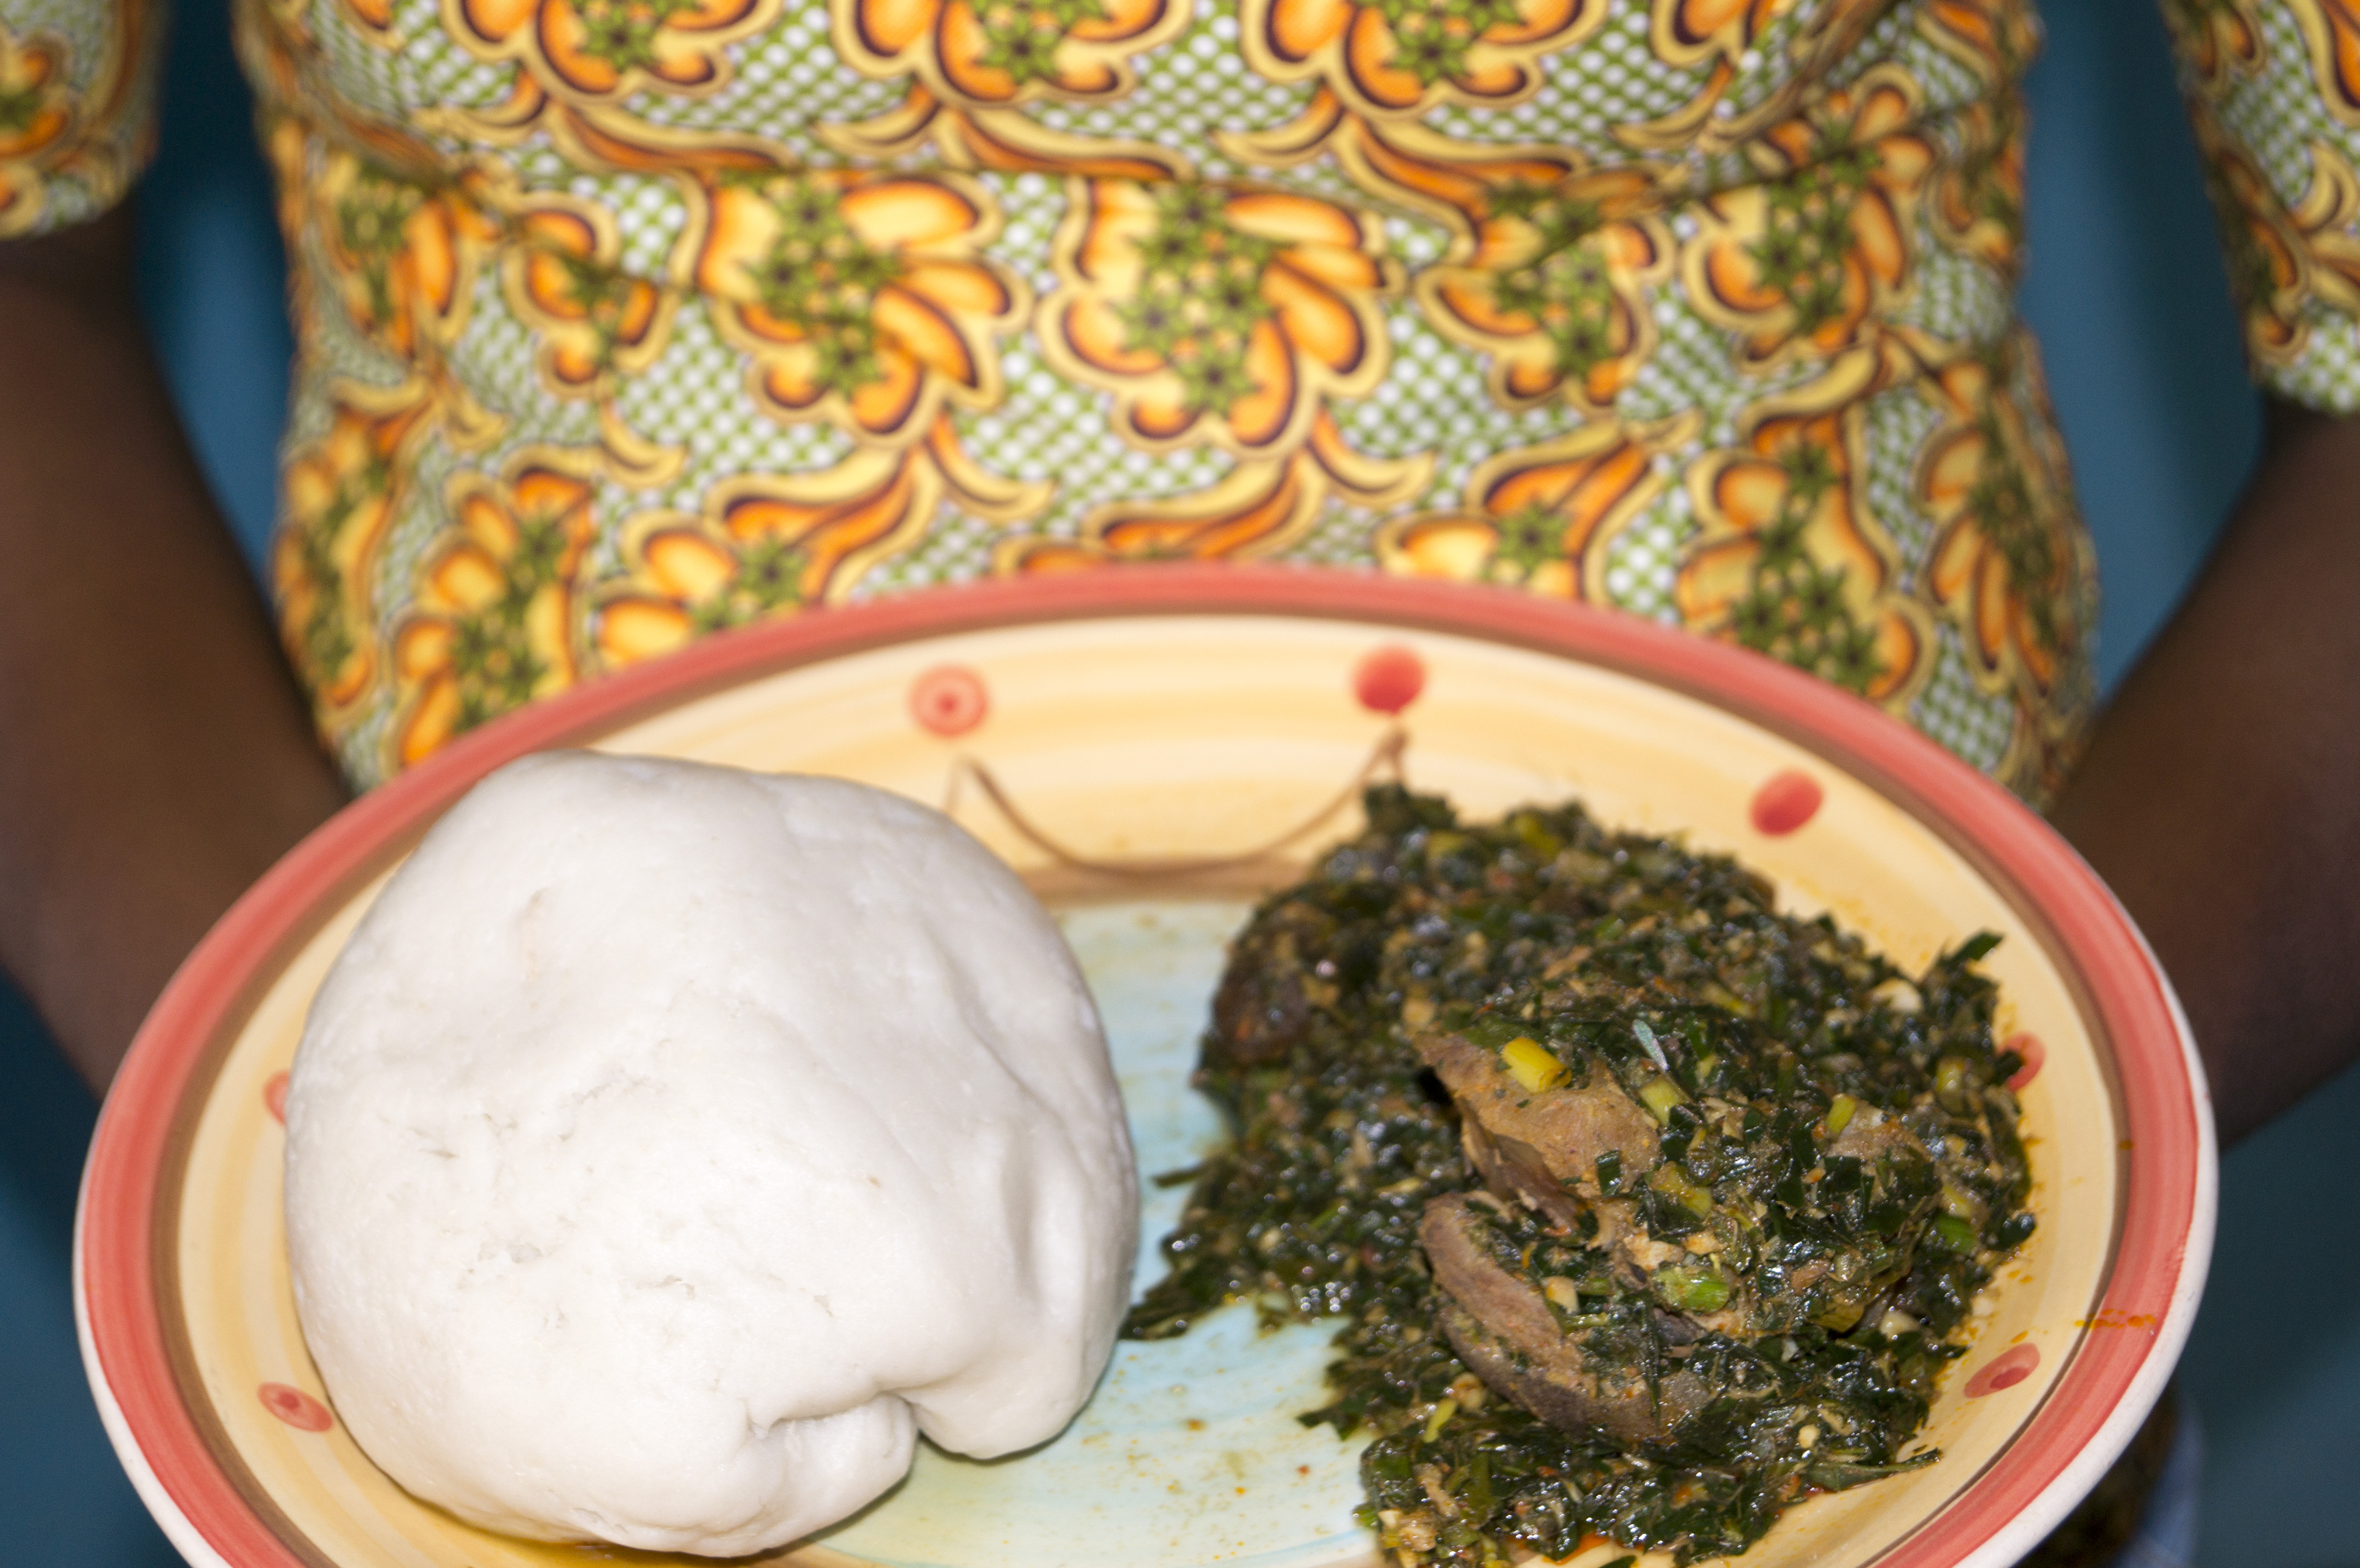 pounded yam an african dish Learn how to make fresh gluten-free pasta dough in in west africa, when not making a mashed yam dish more known as fufu in some areas or simply as pounded yam.